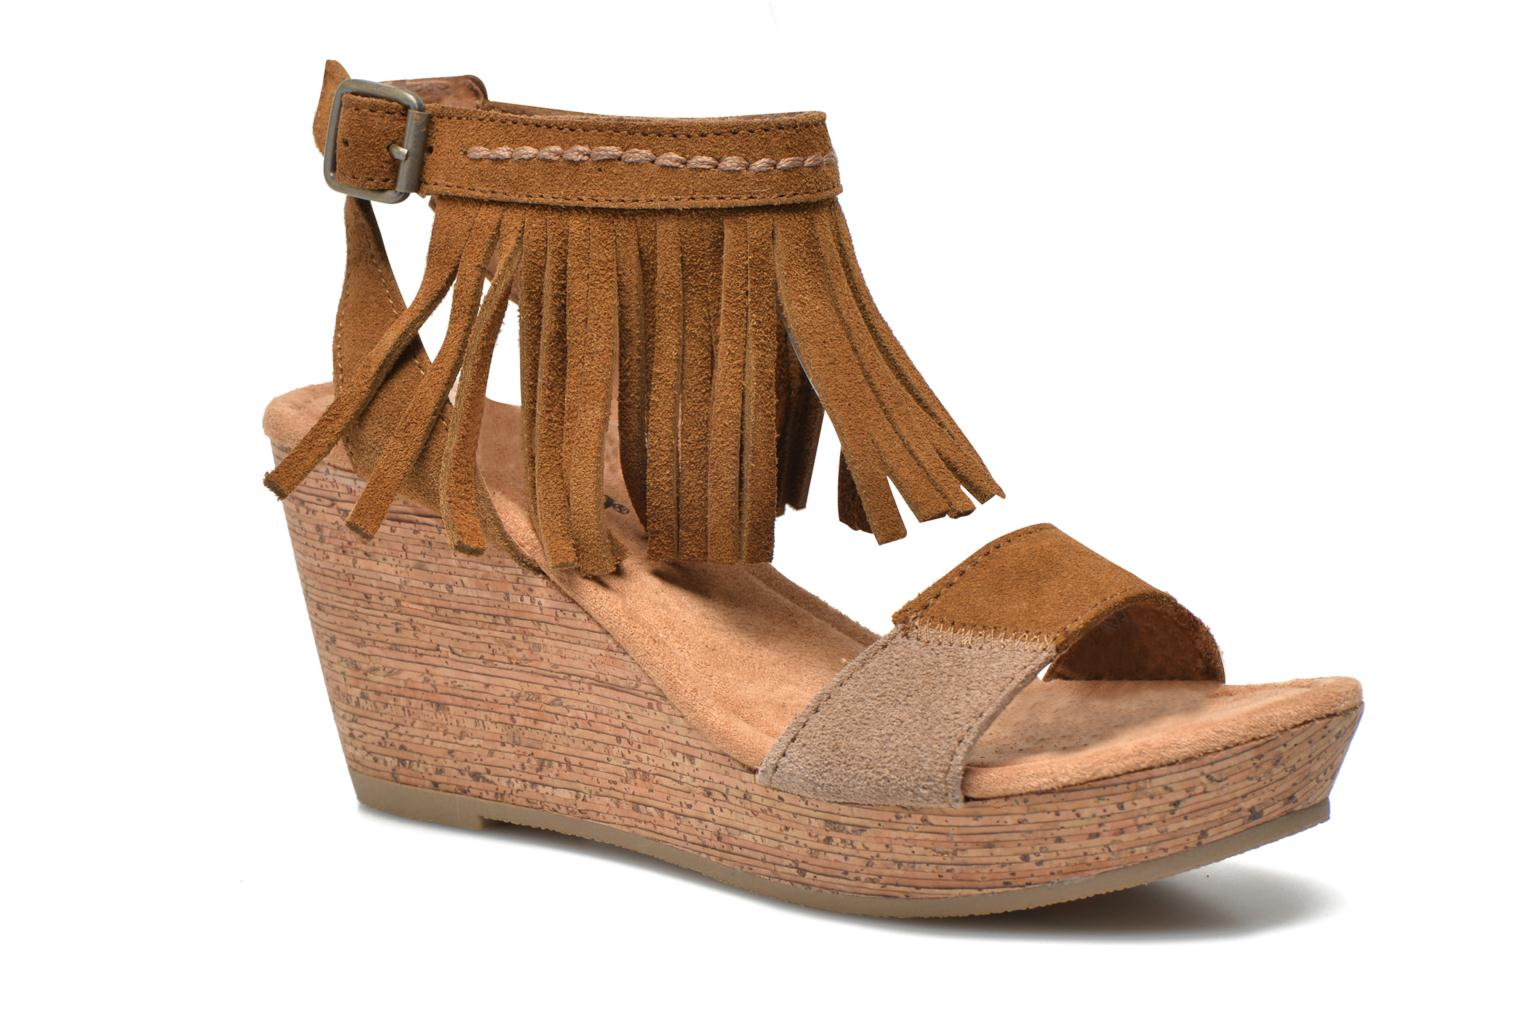 Marques Chaussure femme Minnetonka femme Poppy Black Patch Suede